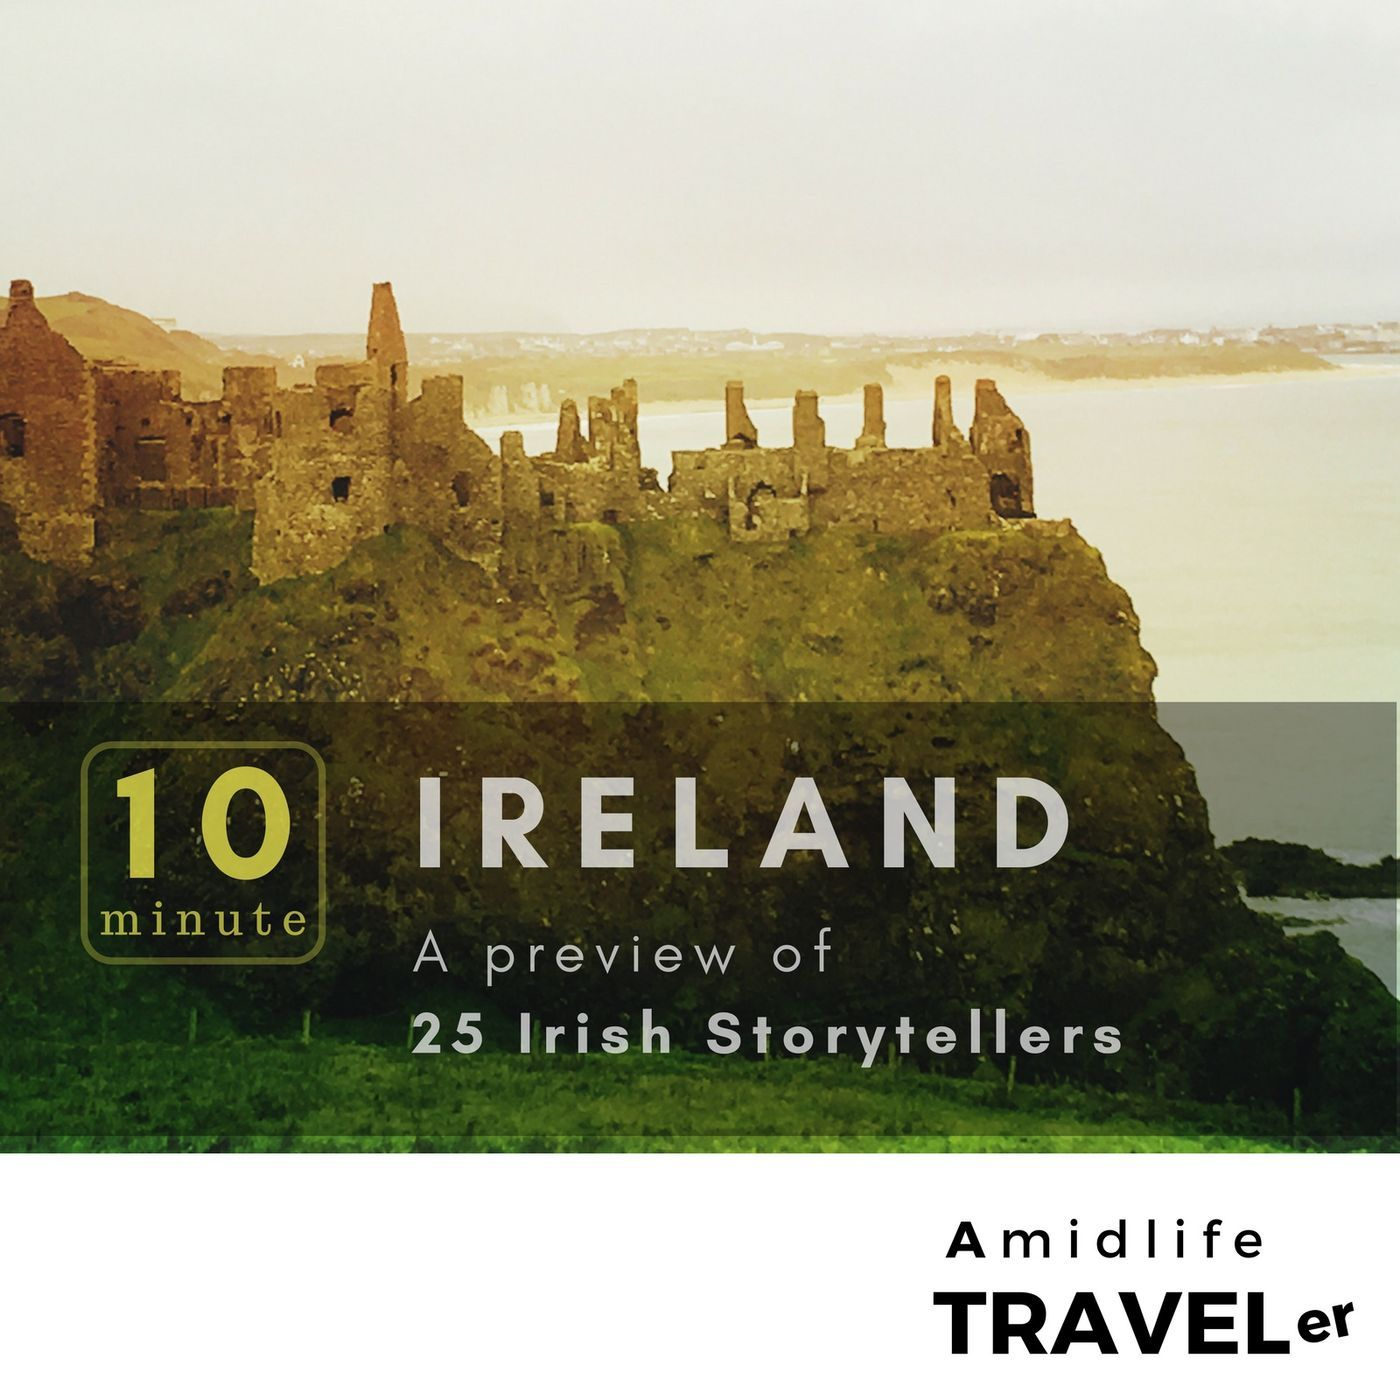 10 minute Ireland? A preview of 25 Irish storytellers.